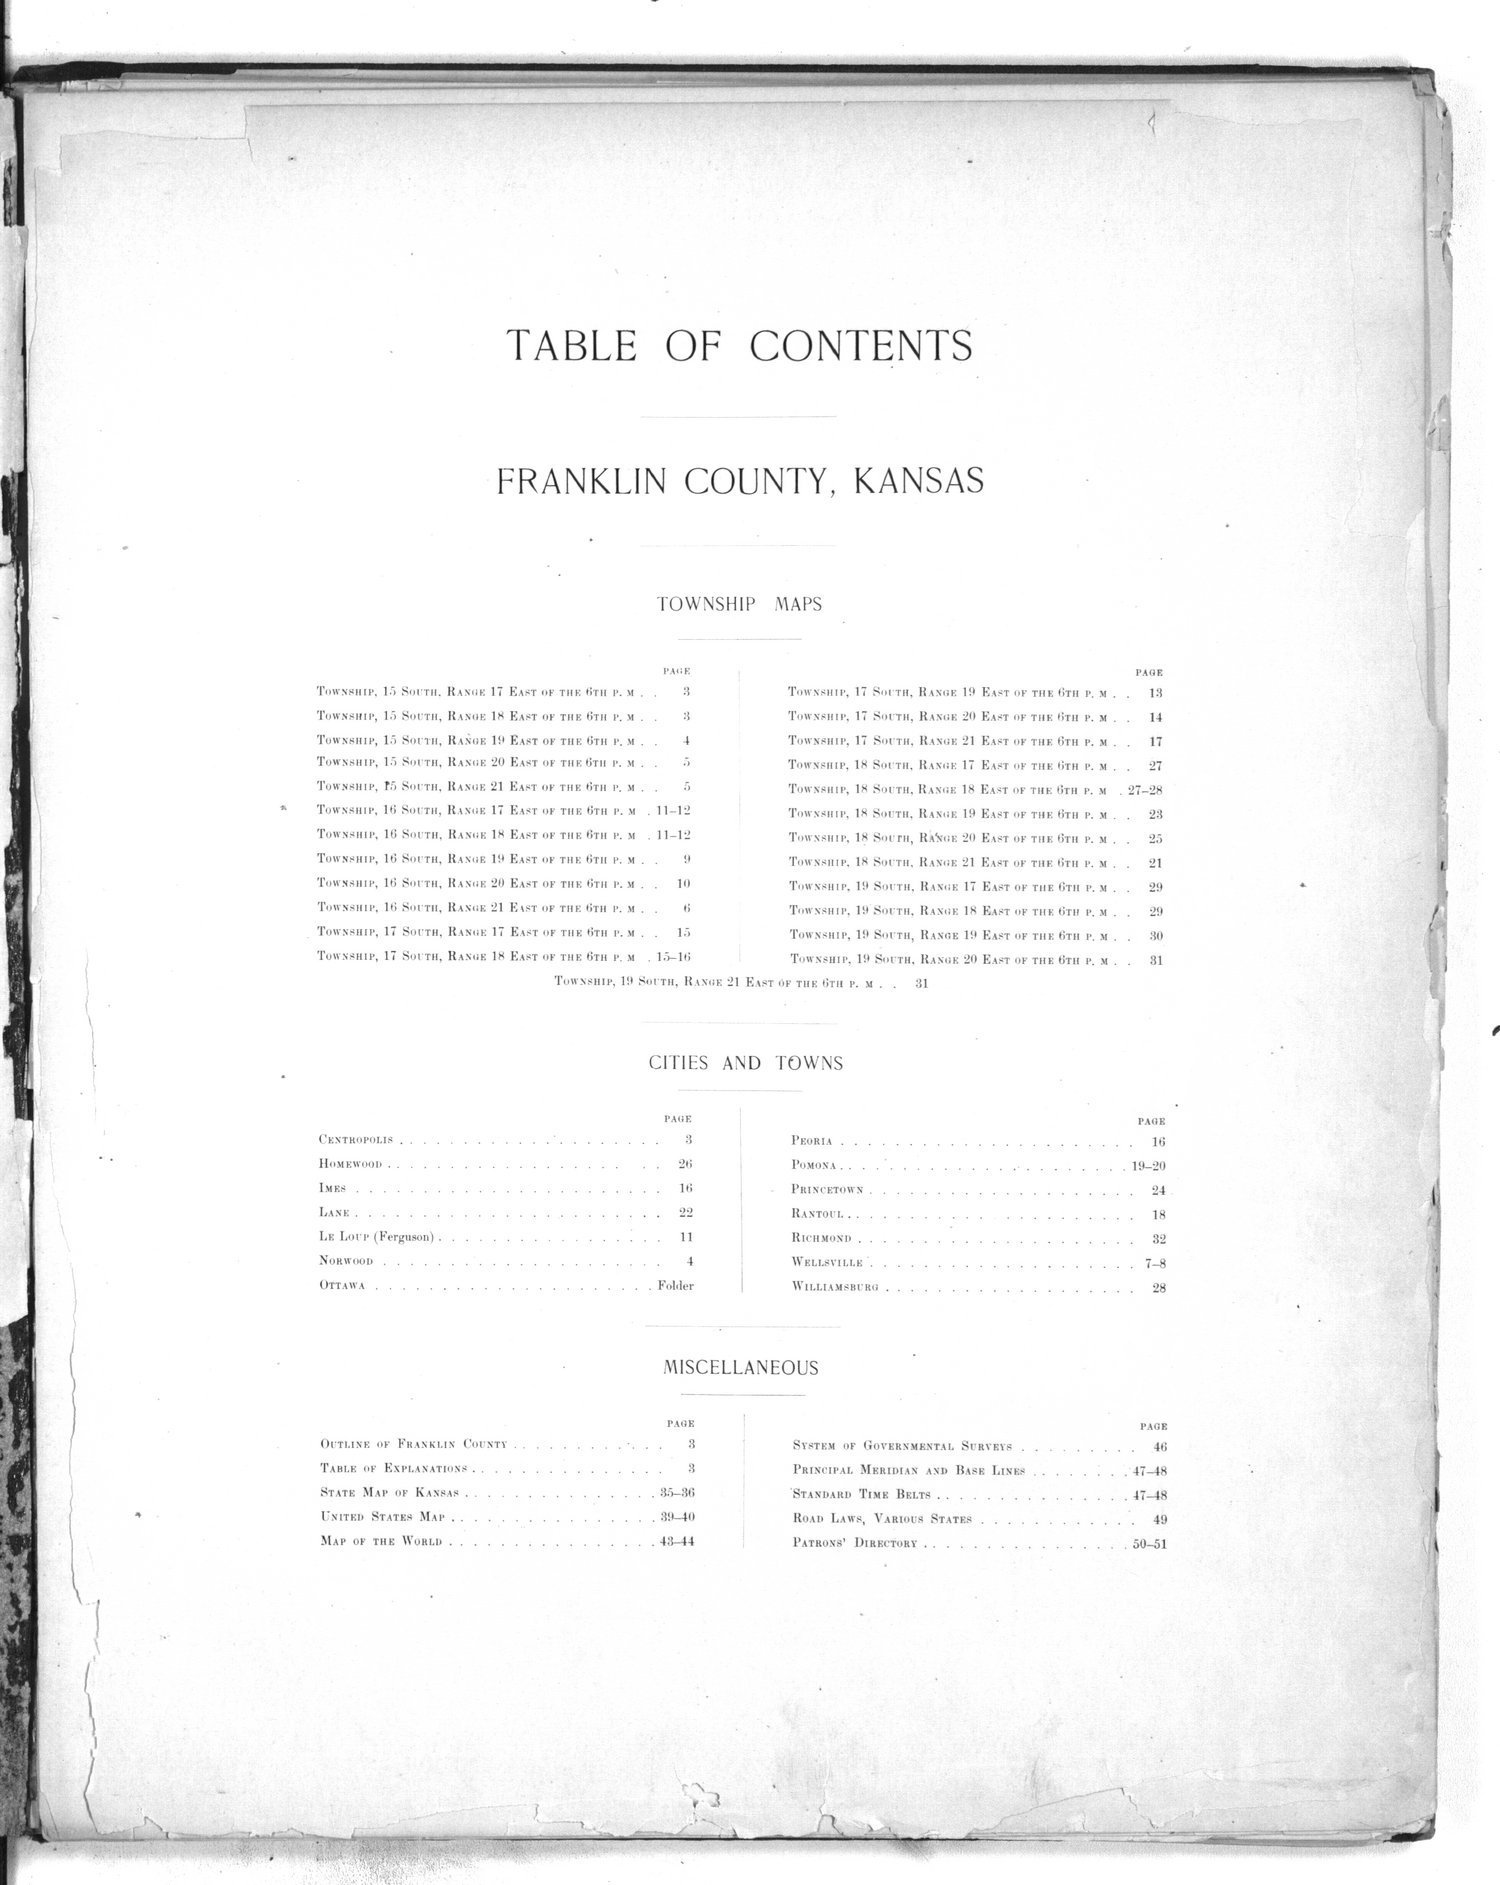 Plat book of Franklin County, Kansas - Table of Contents